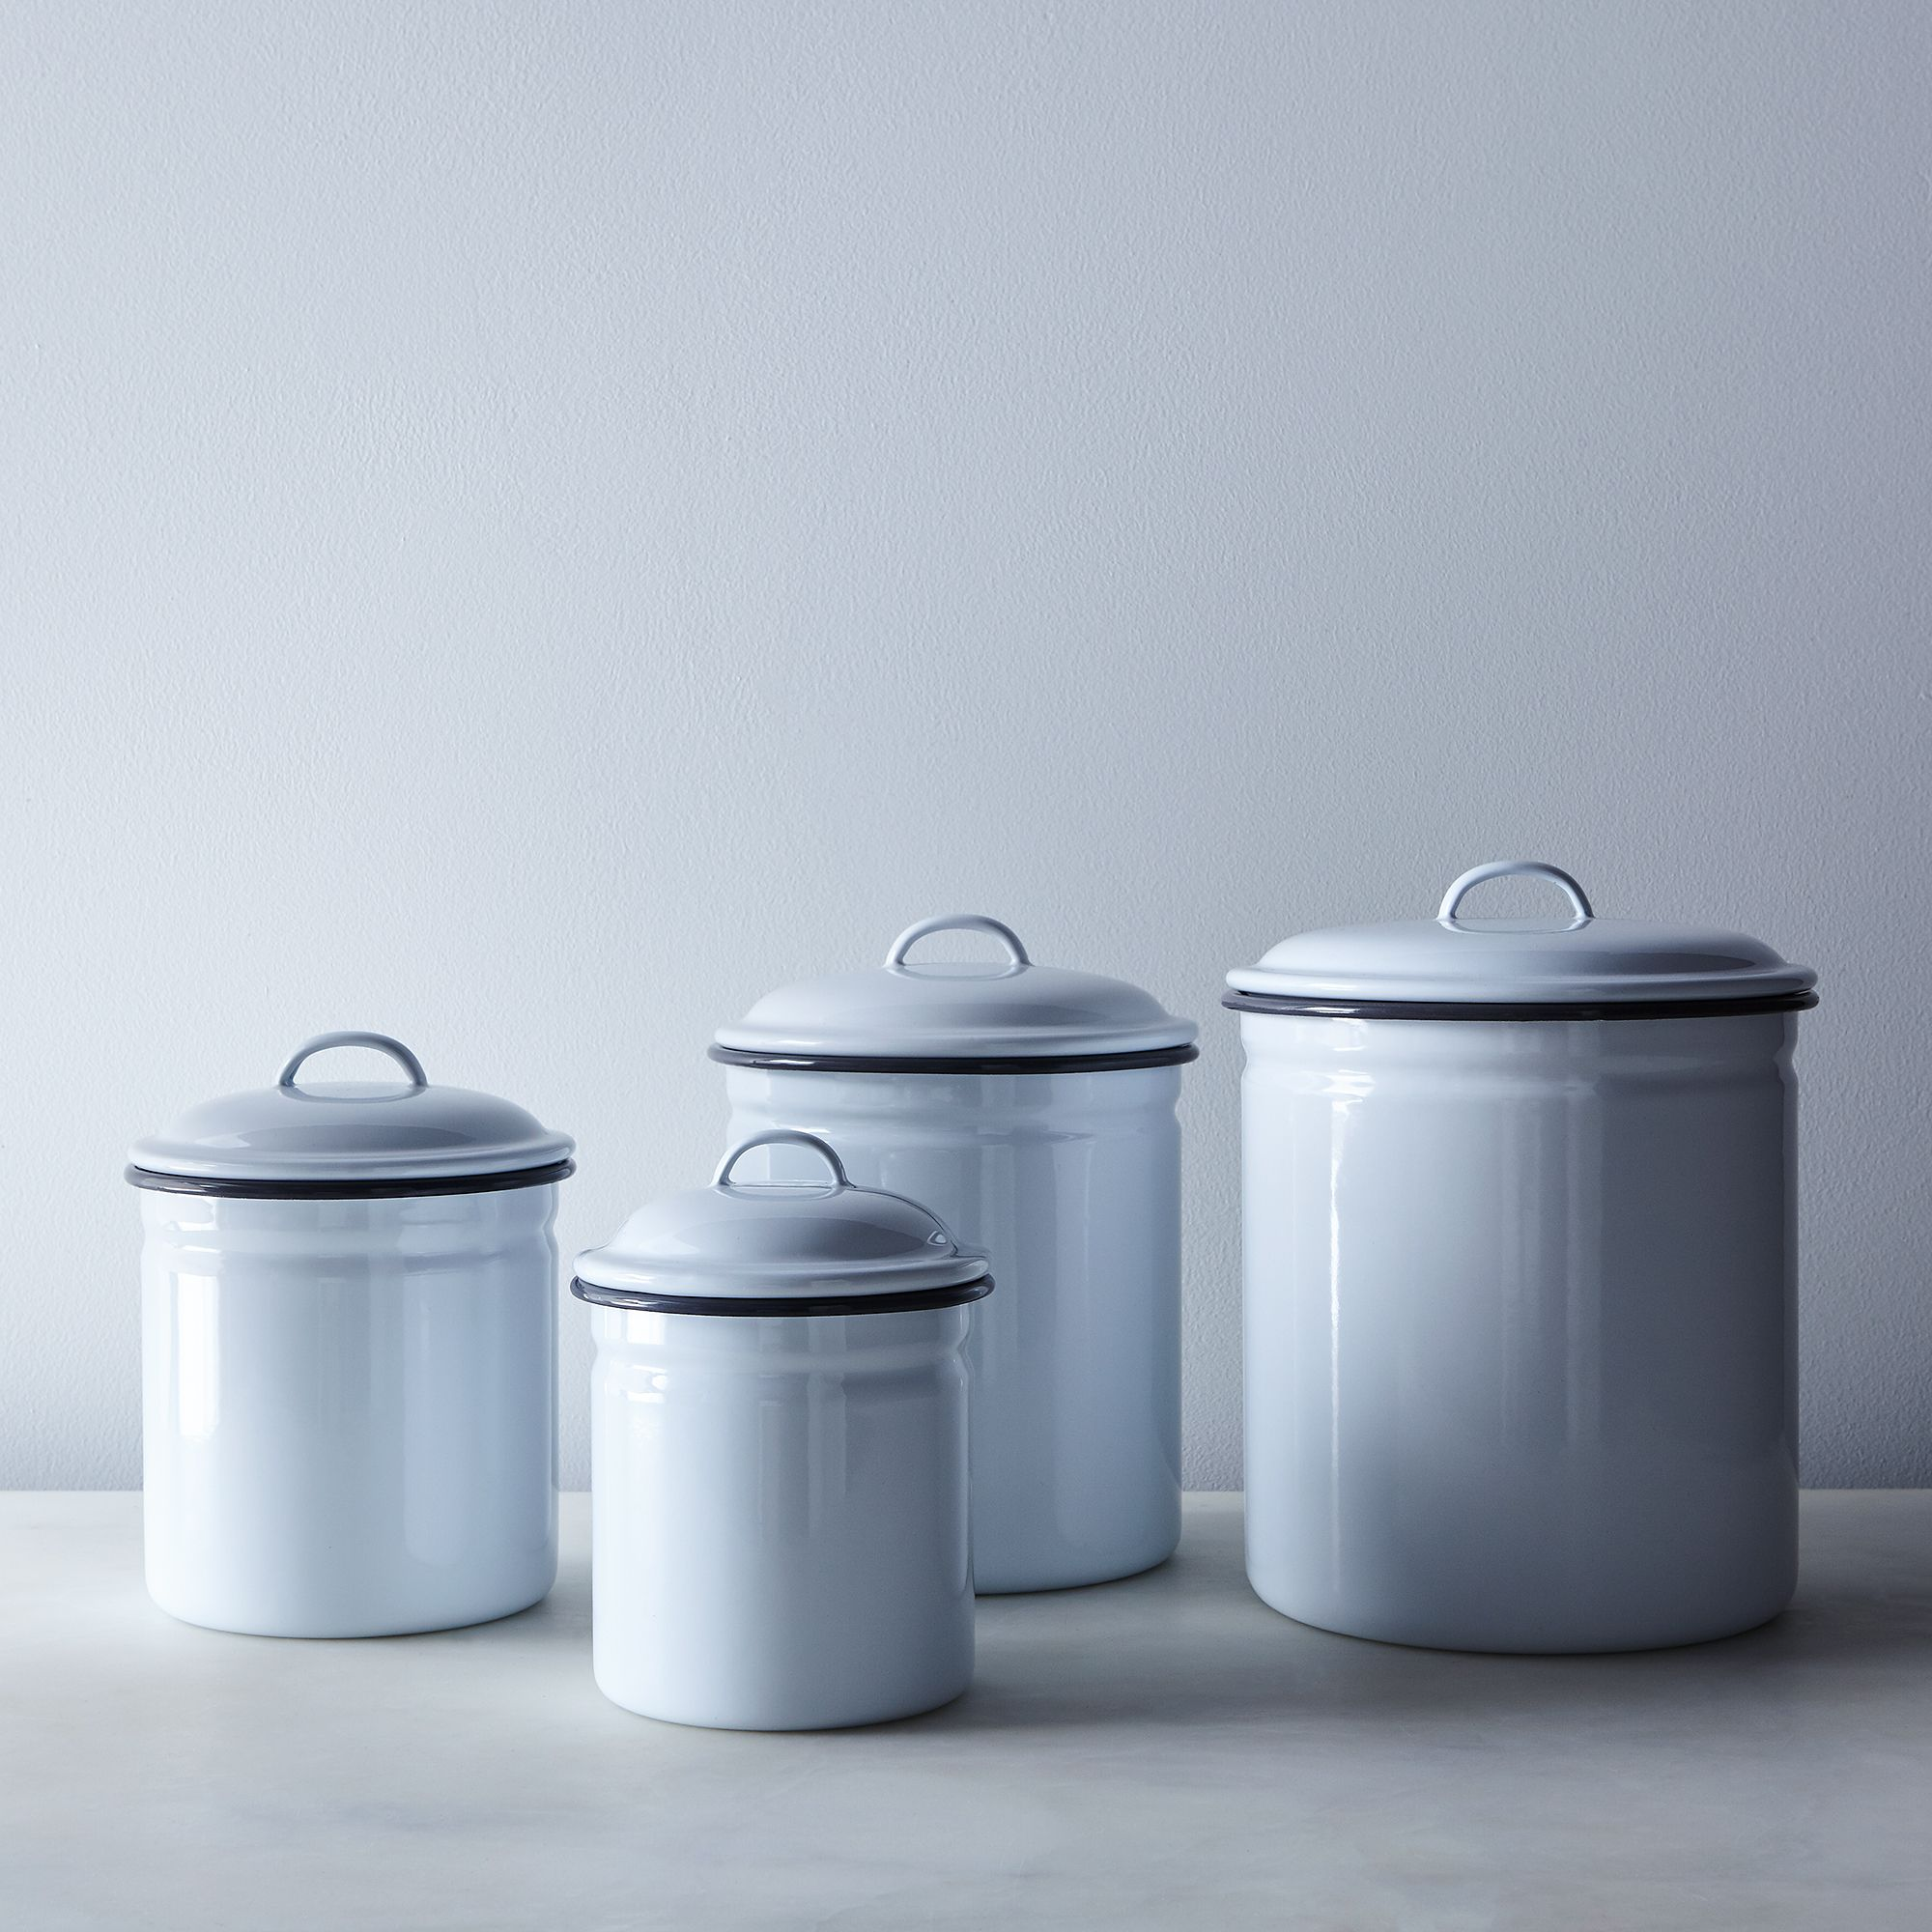 White & Grey Enamel Kitchen Canisters (Set of 4) on Food52